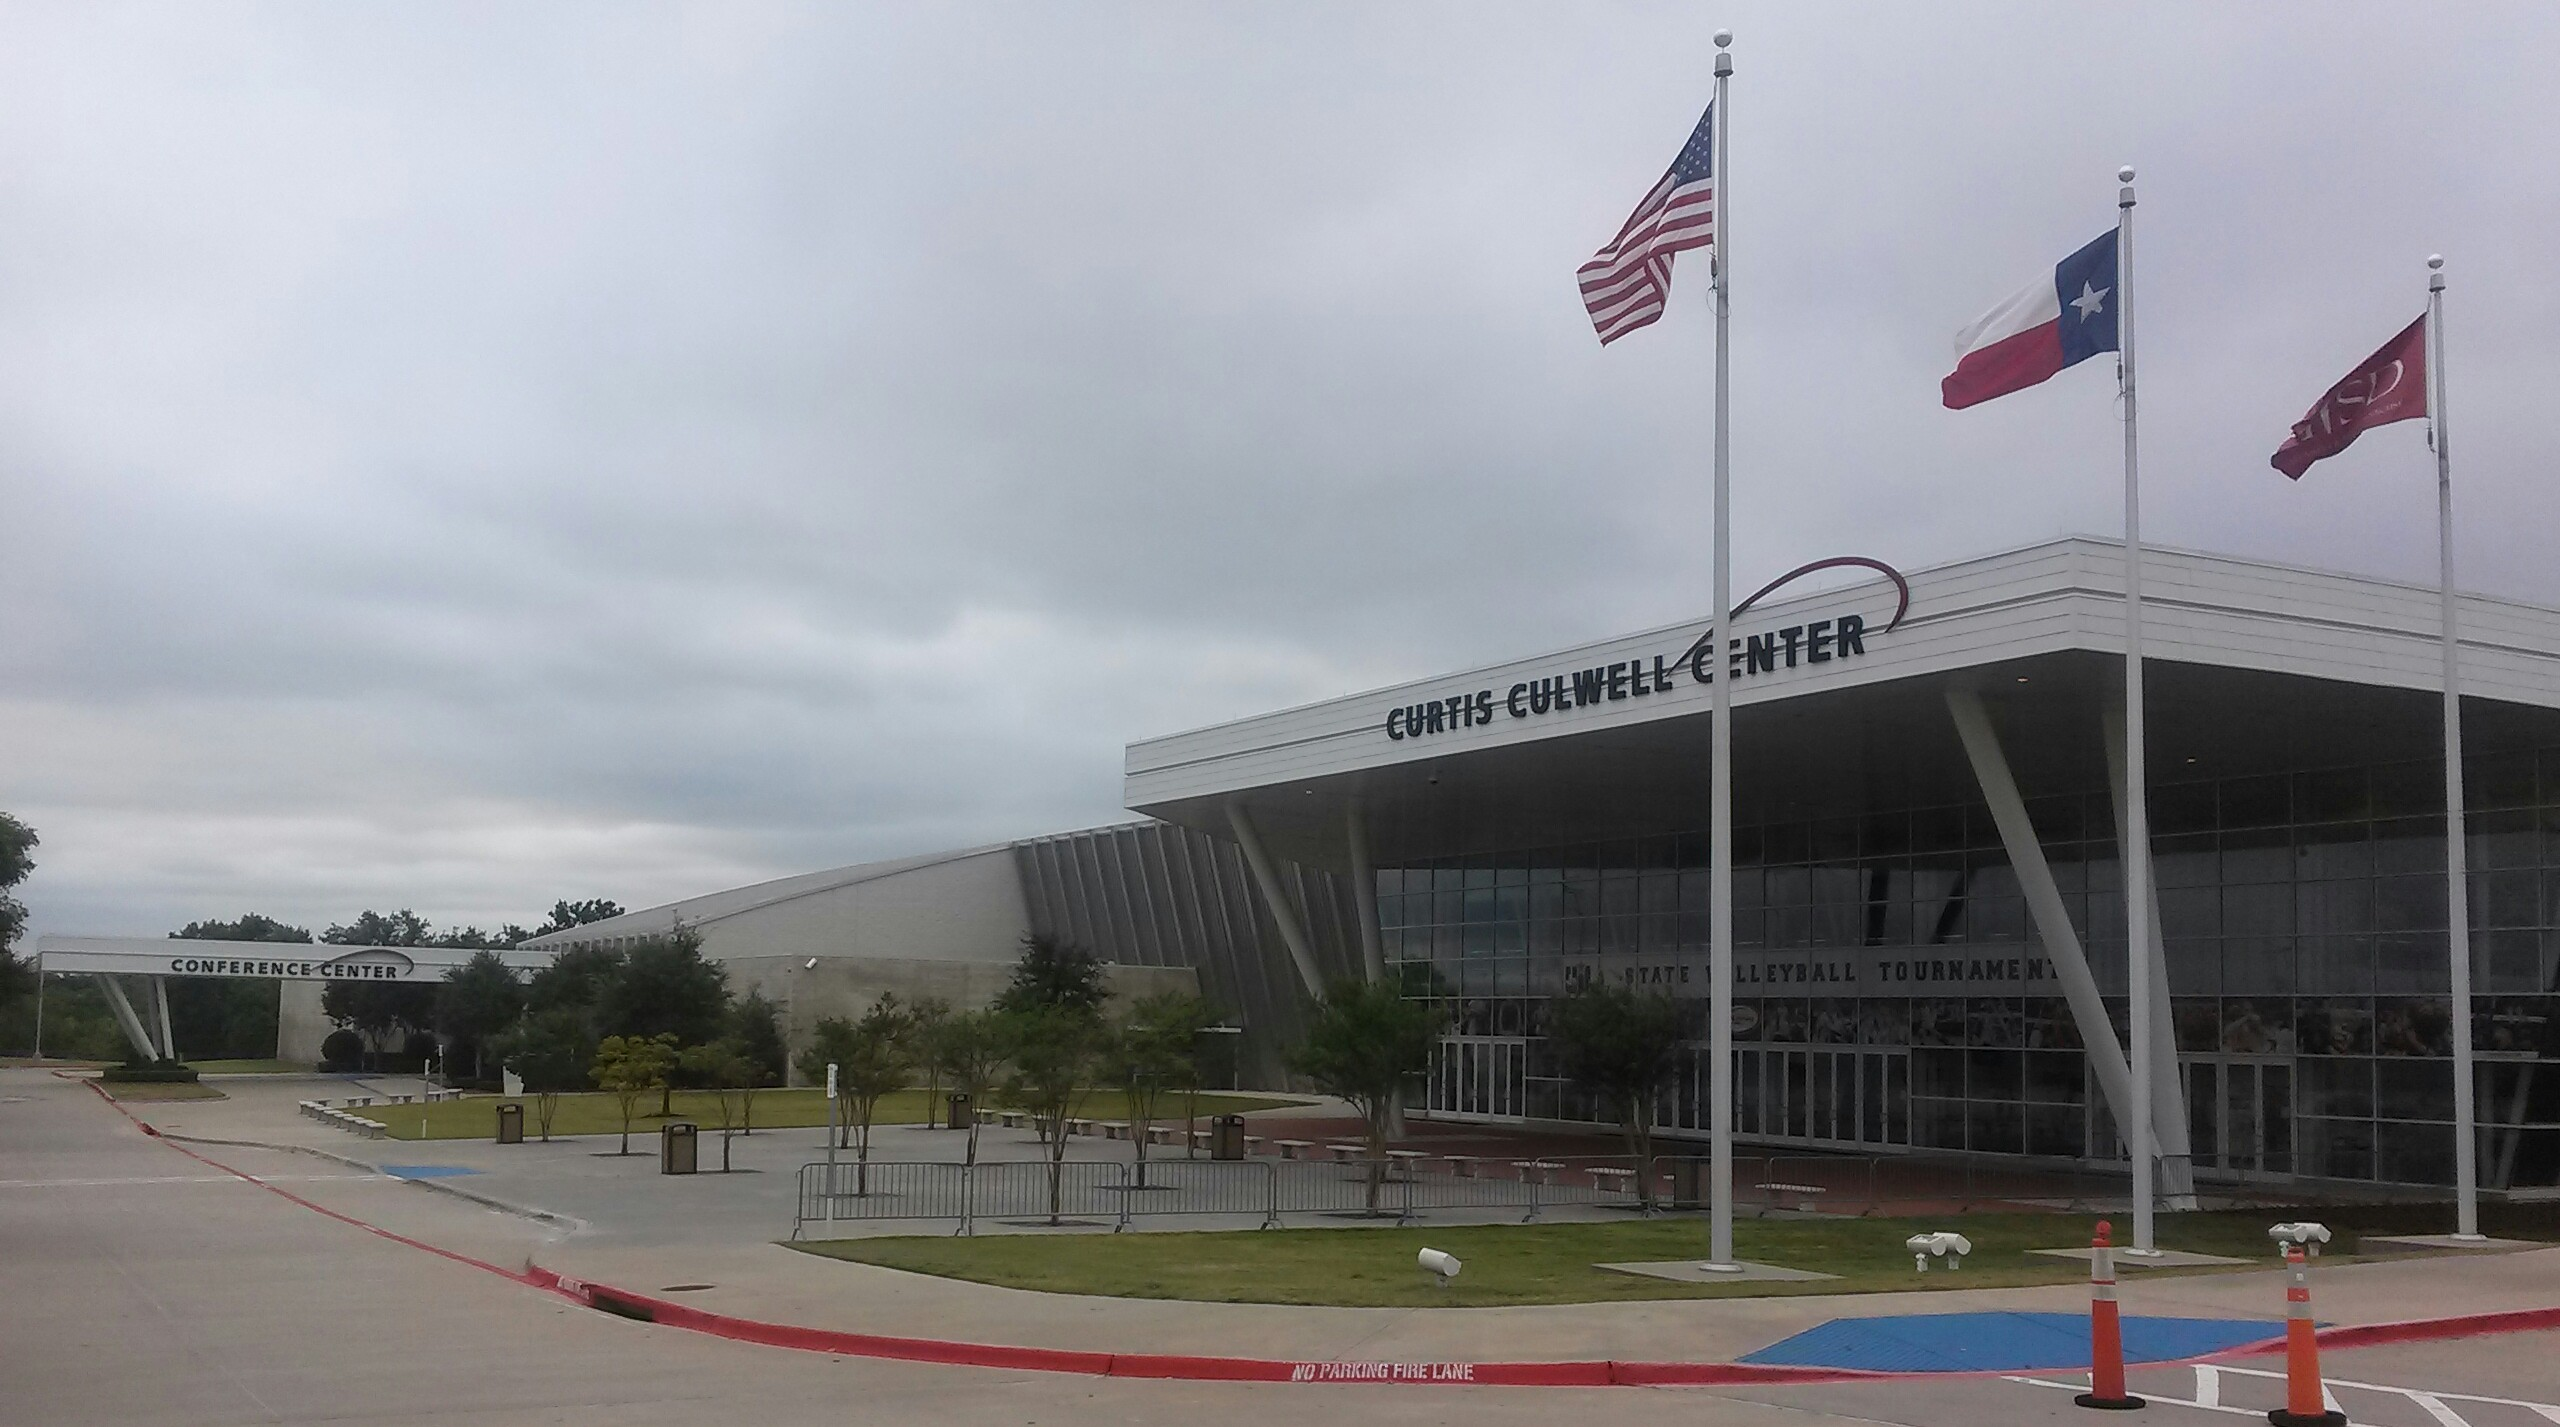 Curtis Culwell Center attack - Wikipedia